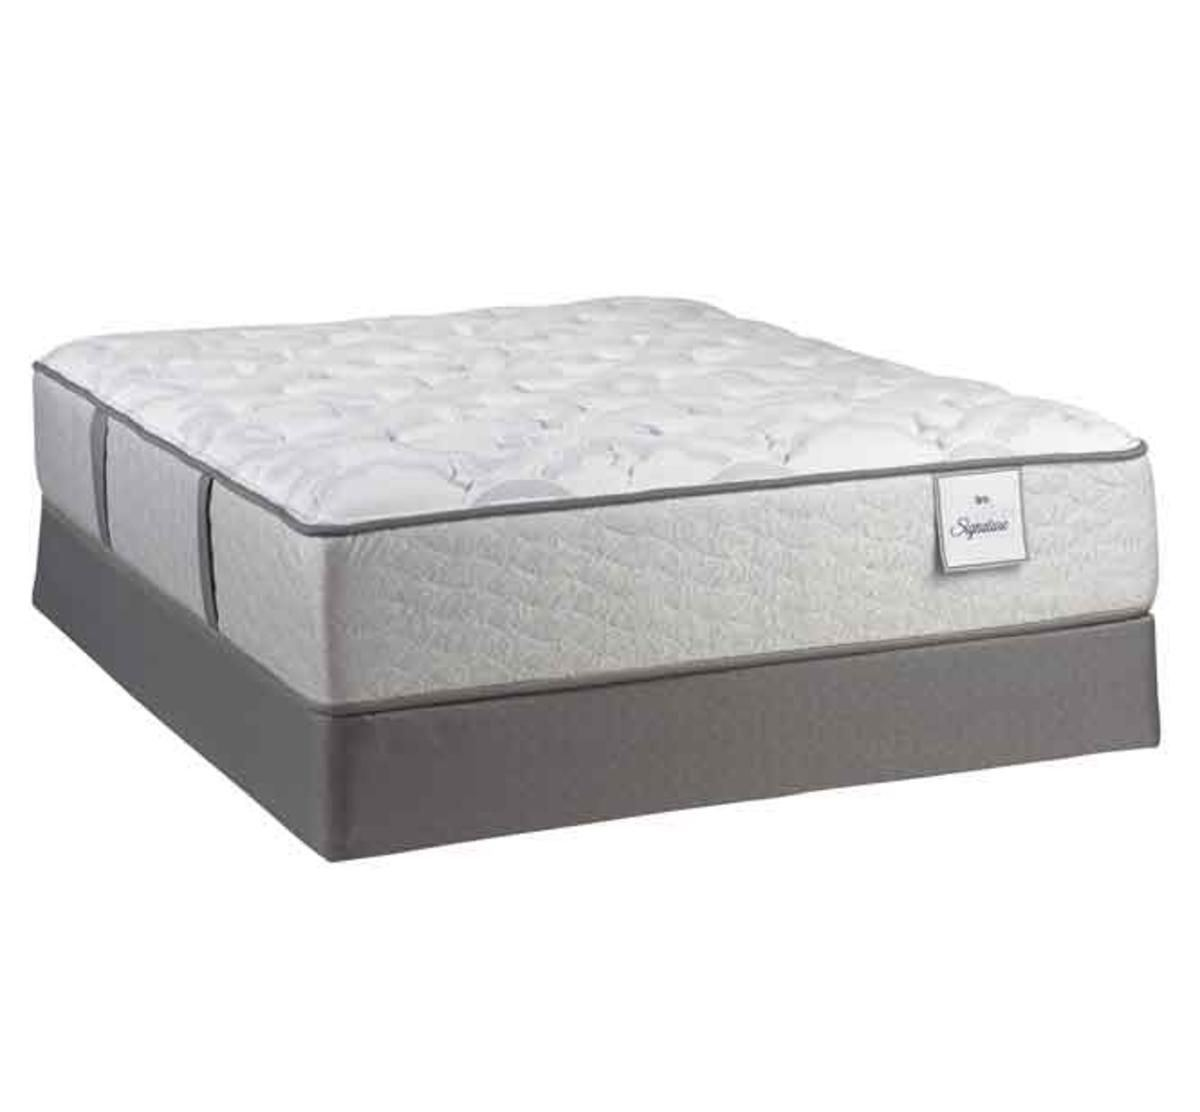 Twin Xl Mattress With Picture Of Serta Century Signature Imperial Sea Twin Xl Mattress Set Imperial Sea Twin Xl Mattress Set Badcock more